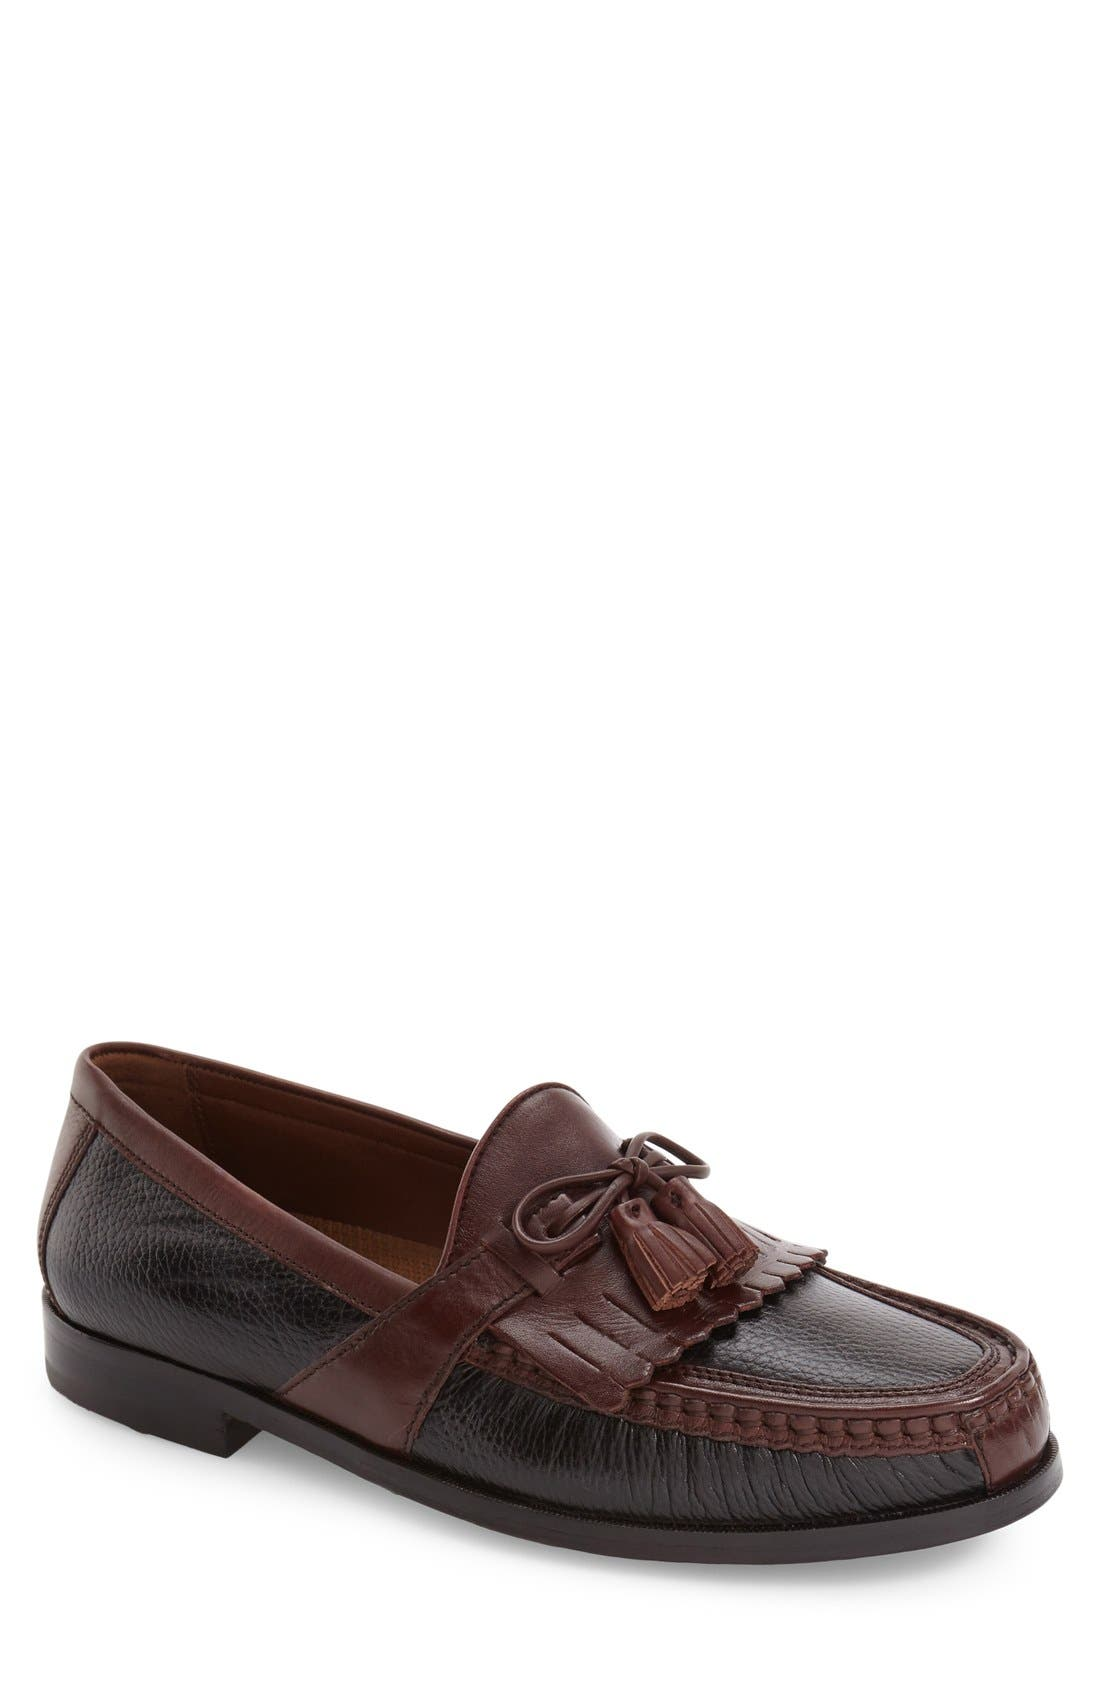 'Aragon II' Loafer,                         Main,                         color, BLACK/ BROWN LEATHER